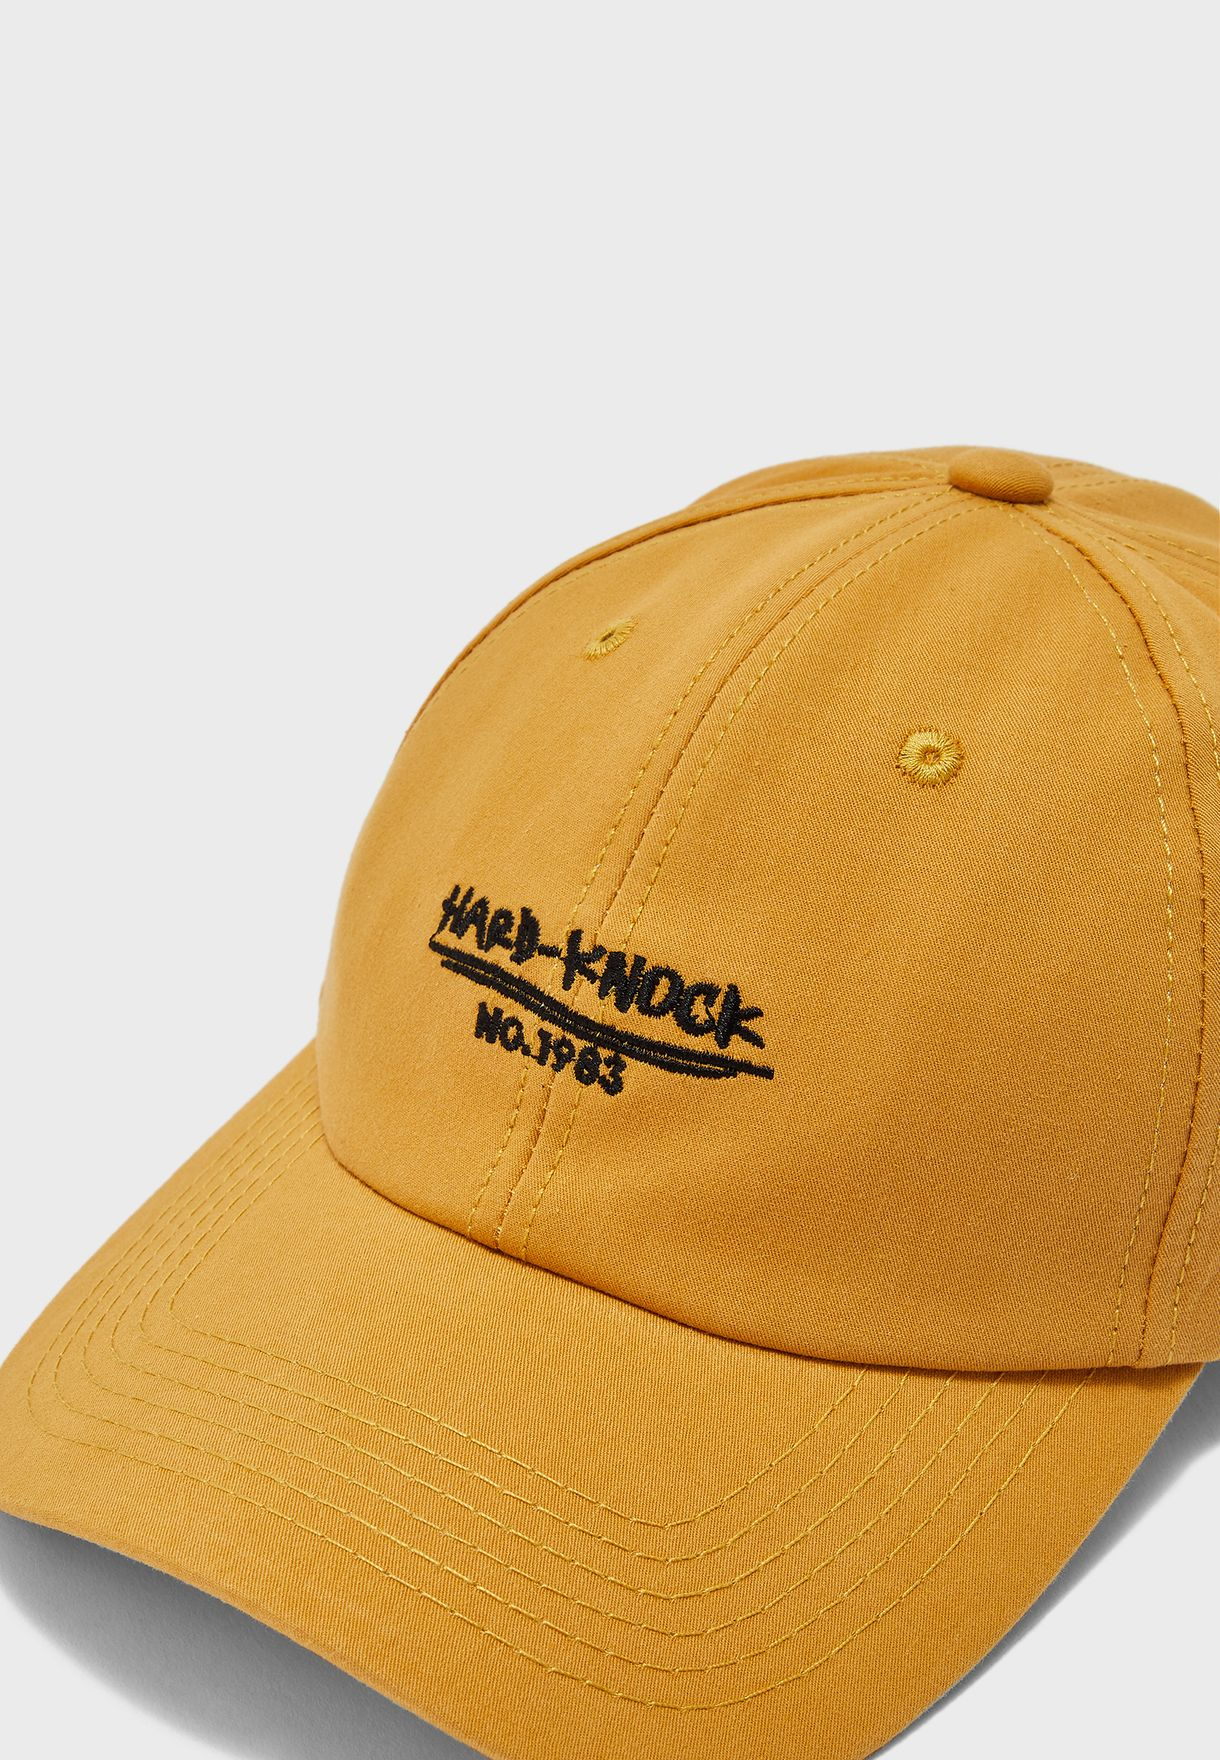 Hard Knook Cap